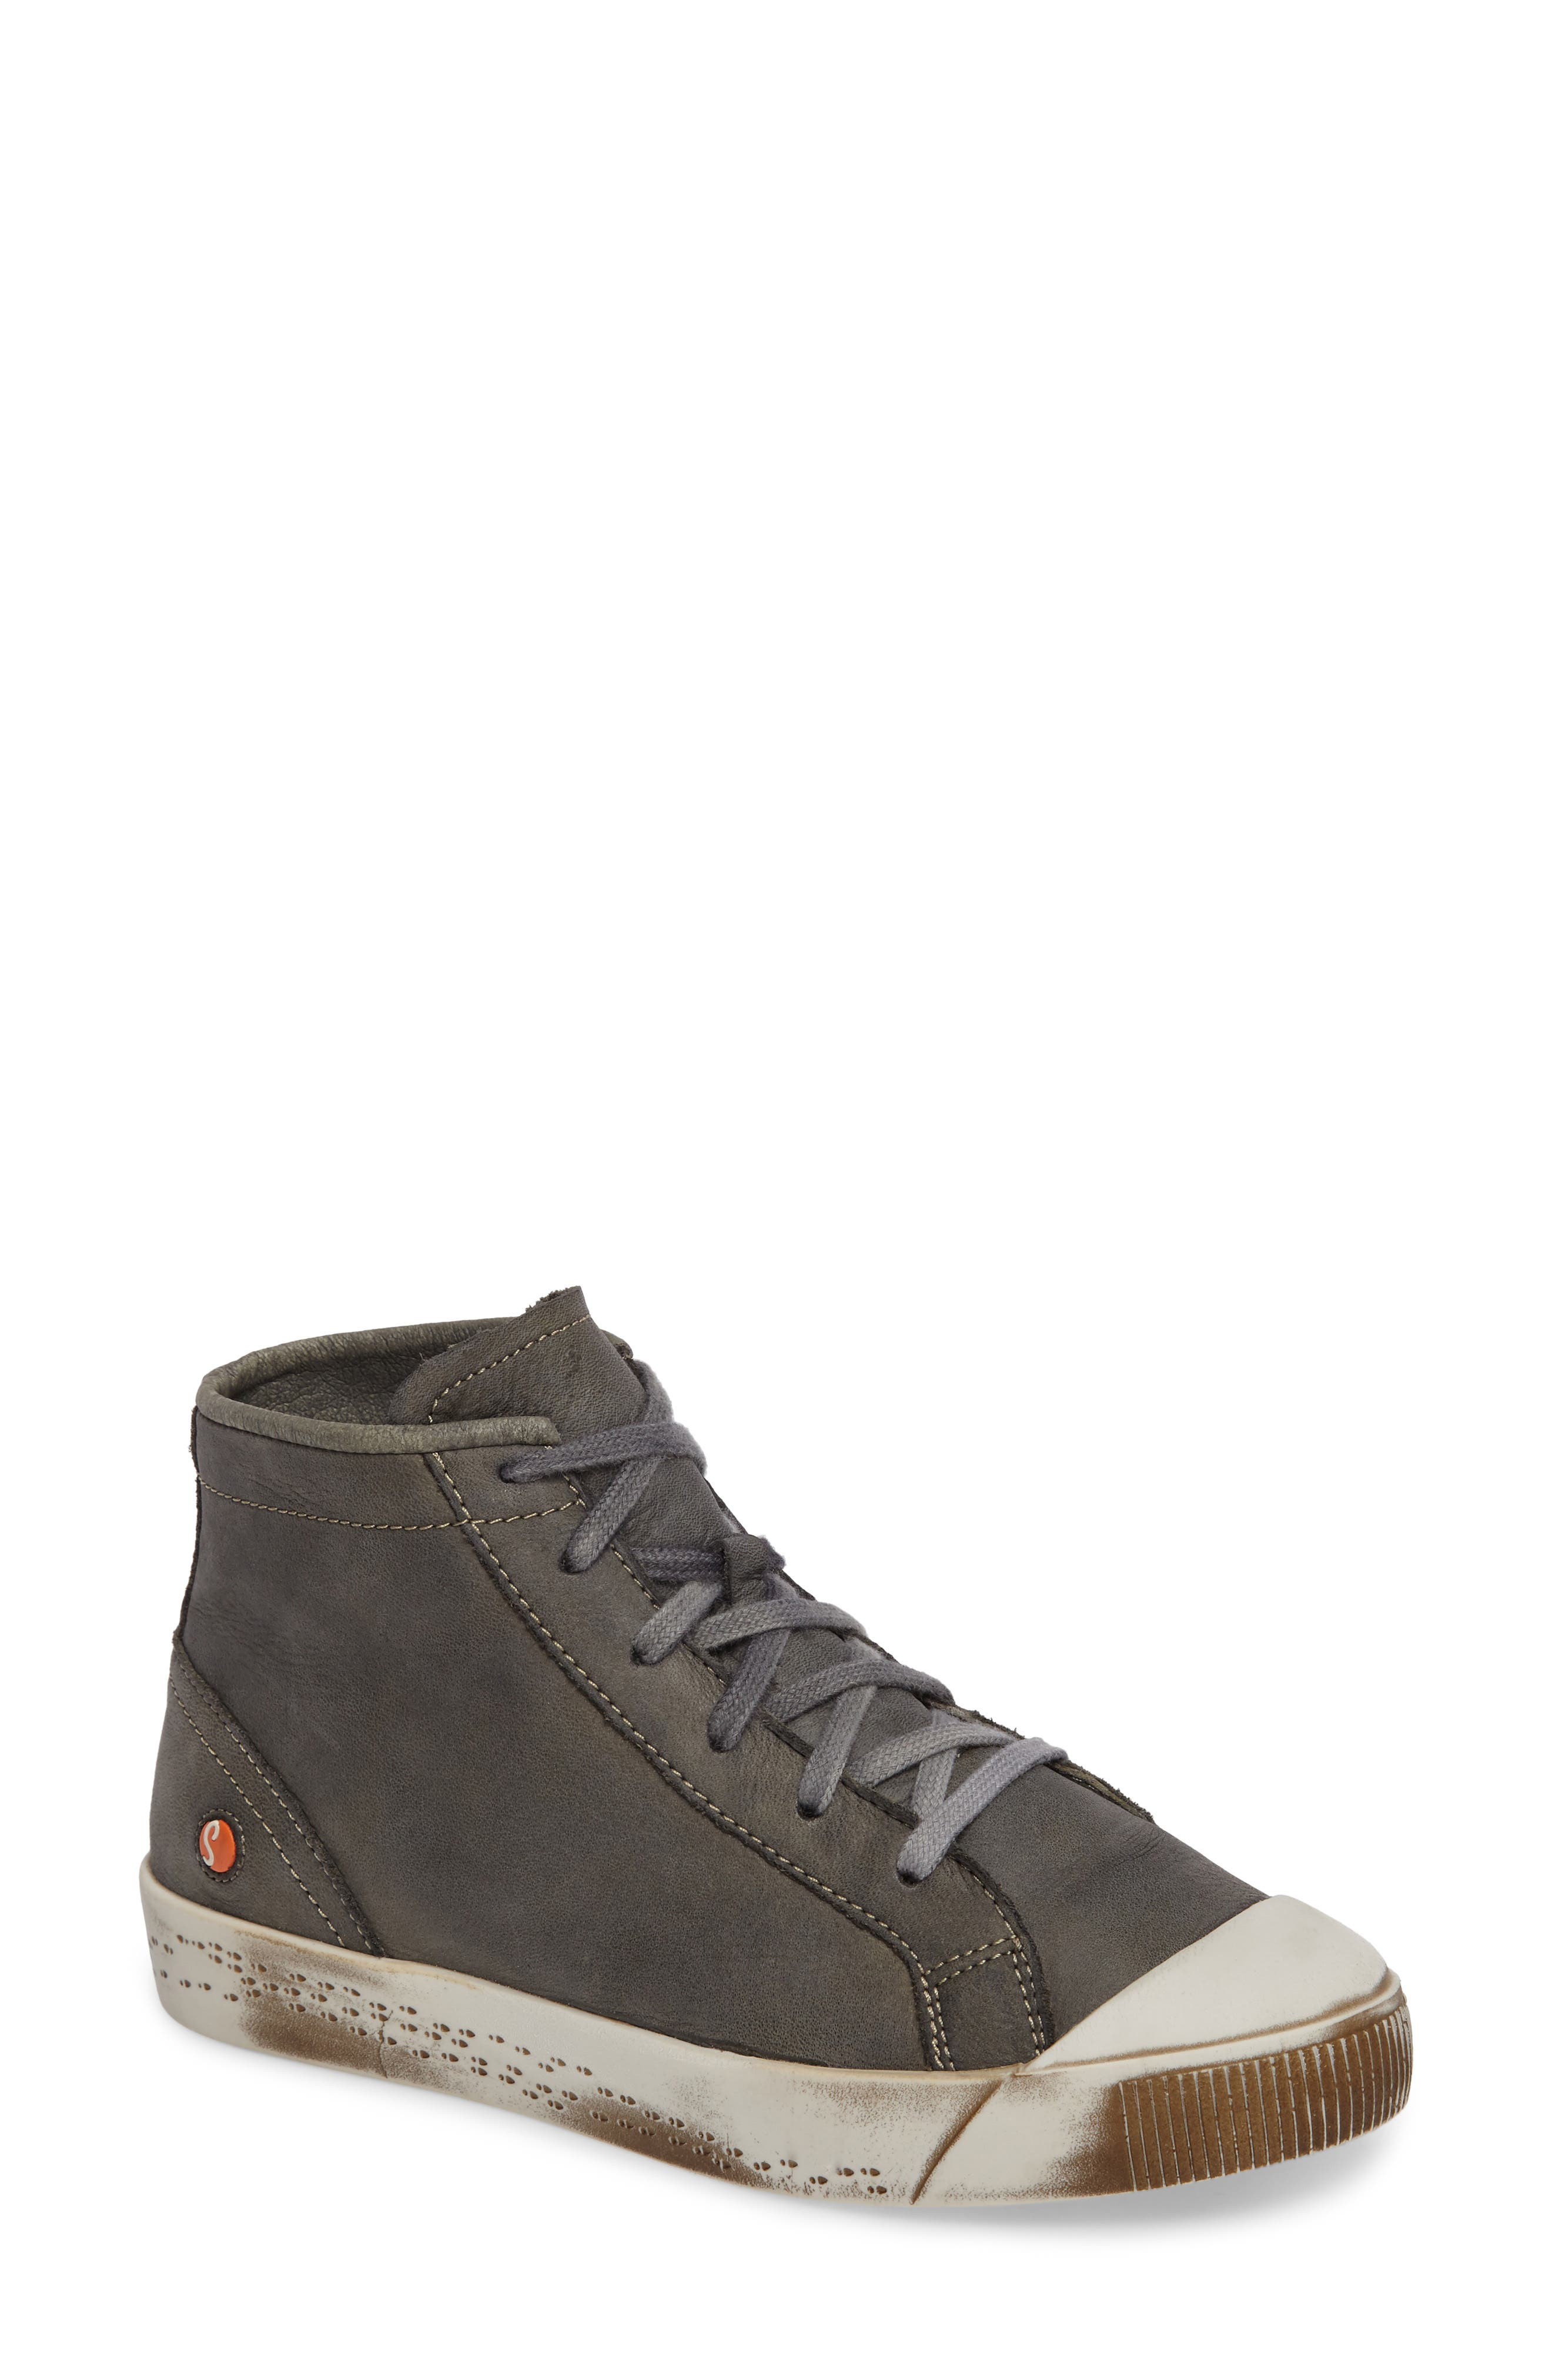 Softinos By Fly London Kip High Top Sneaker - Green